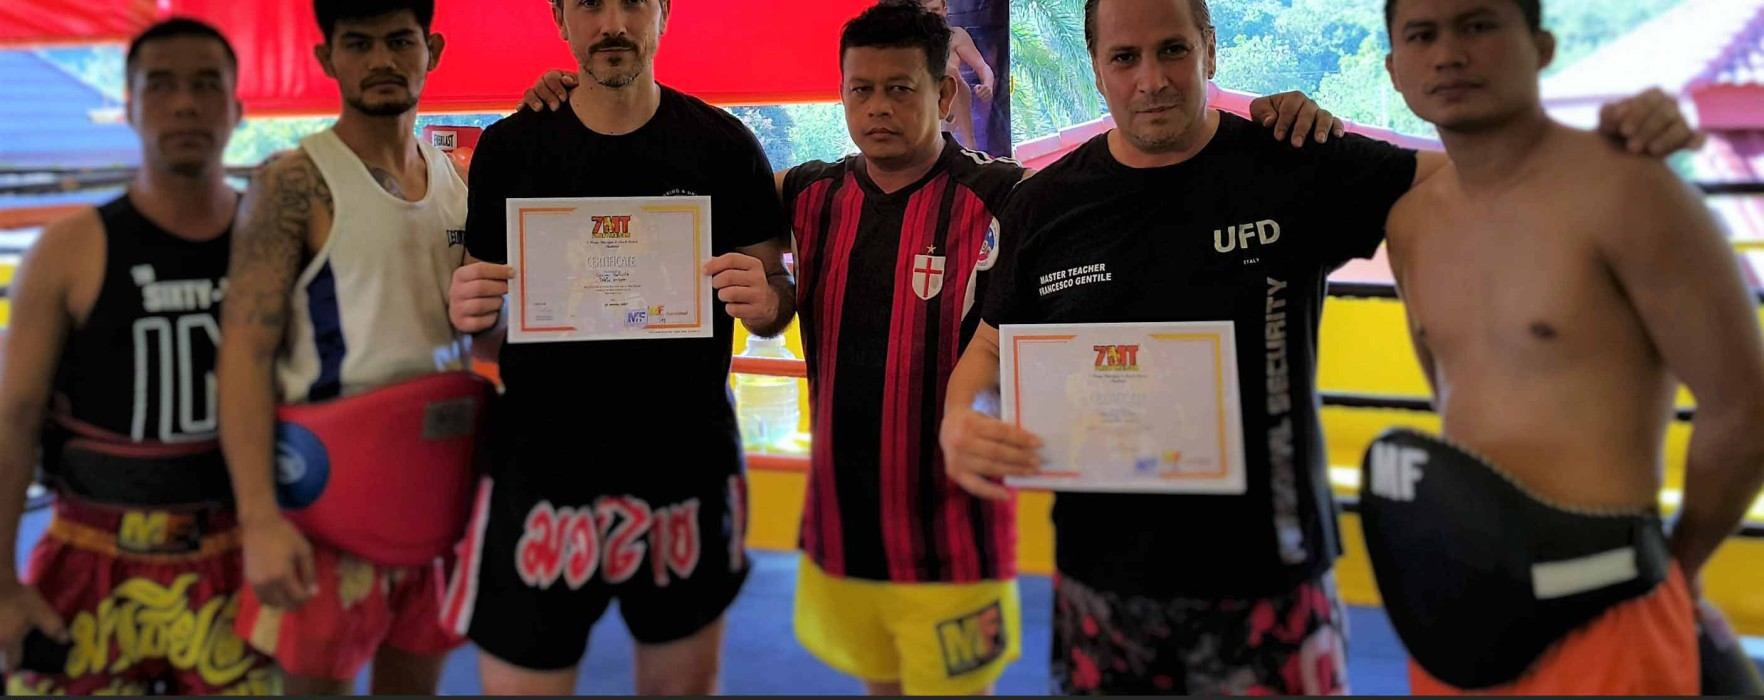 Curiosity: Interesting opporrtunity for Muay Thai trainers / masters who want to improve themselves in Thailand